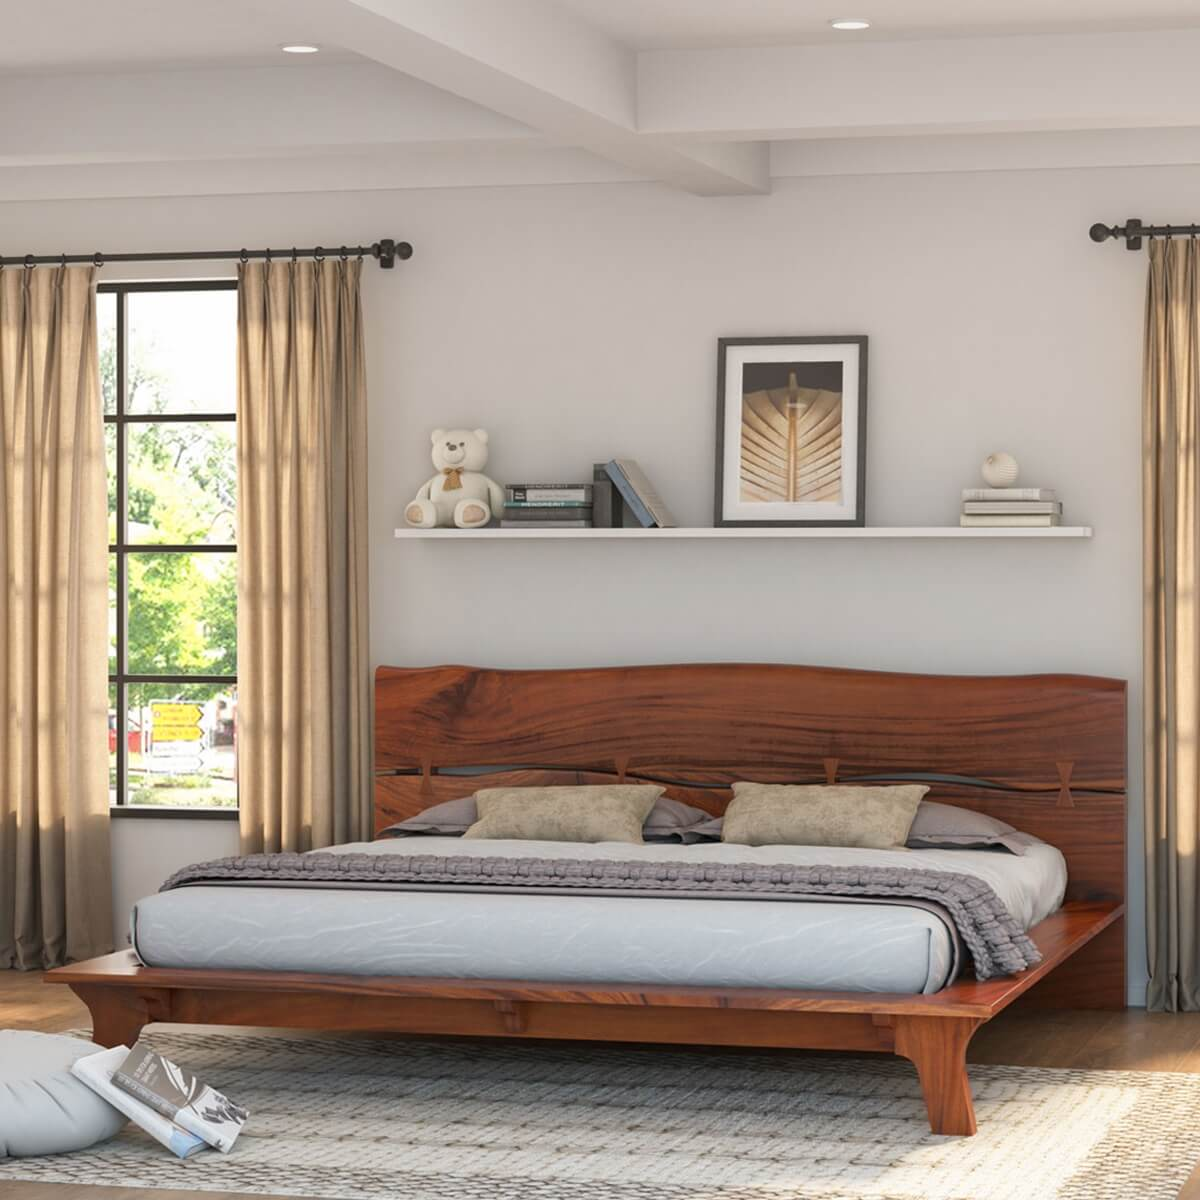 Levi Solid Acacia Wood Platform Bed Frame with Live Edge Headboard